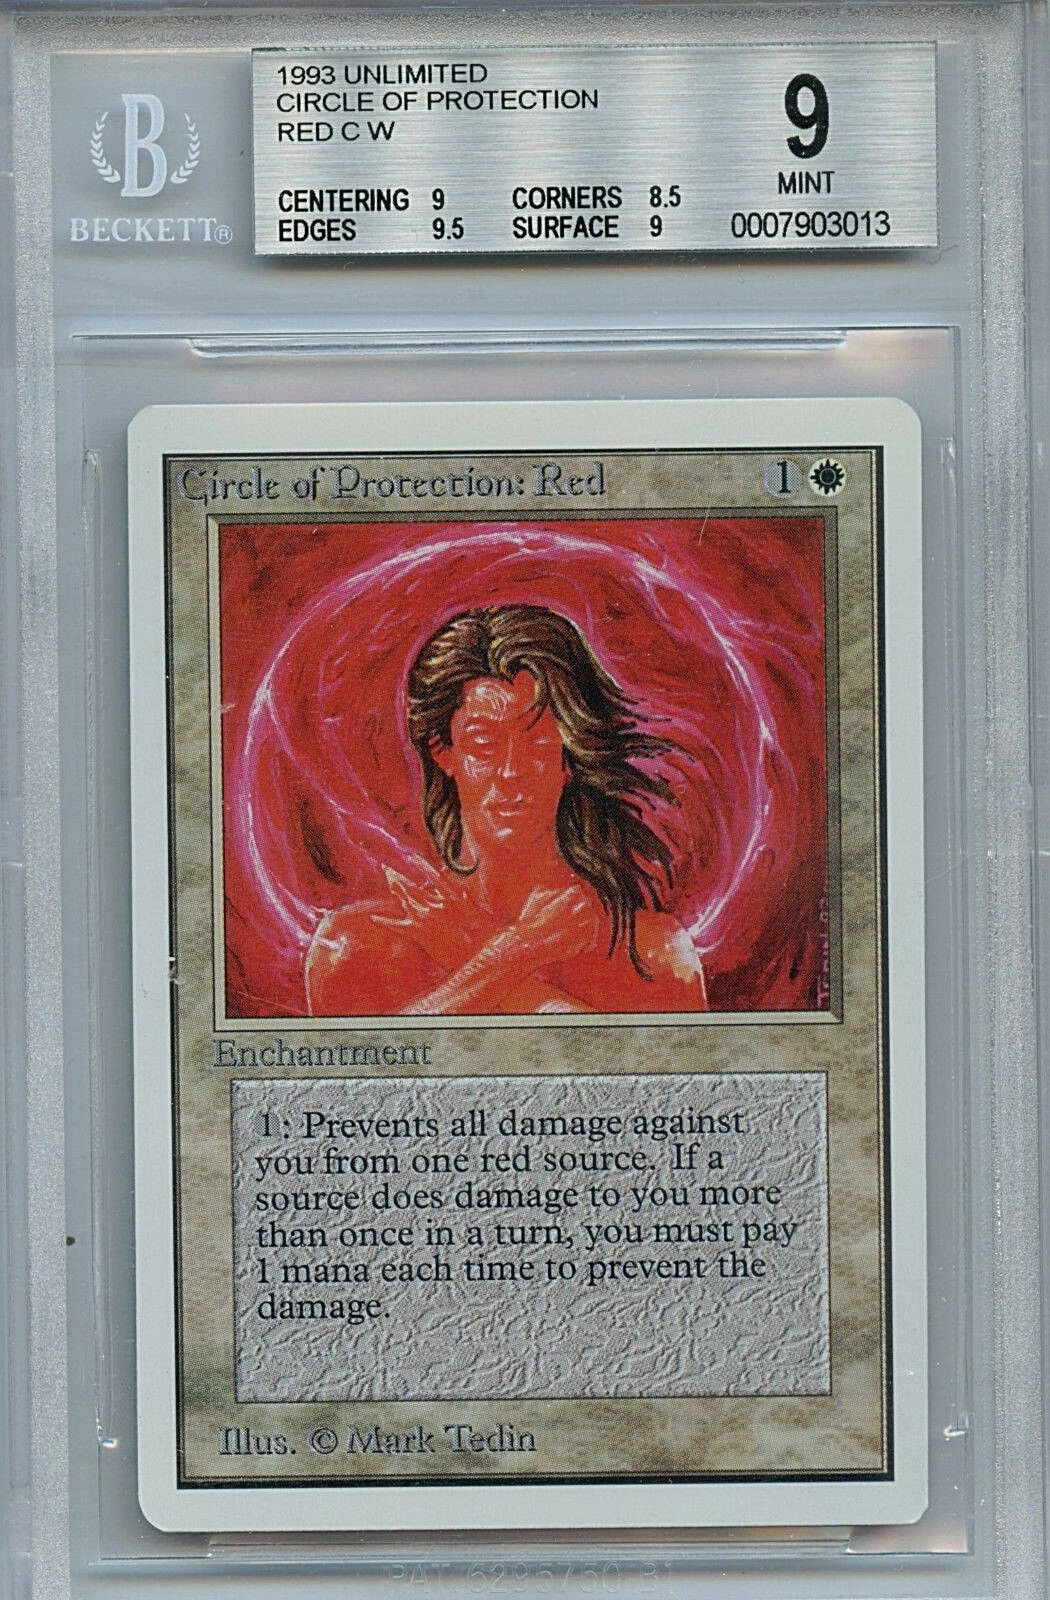 MTG Unlimited Circle of Predection Red BGS 9.0 (9) Mint WOTC Card 3013